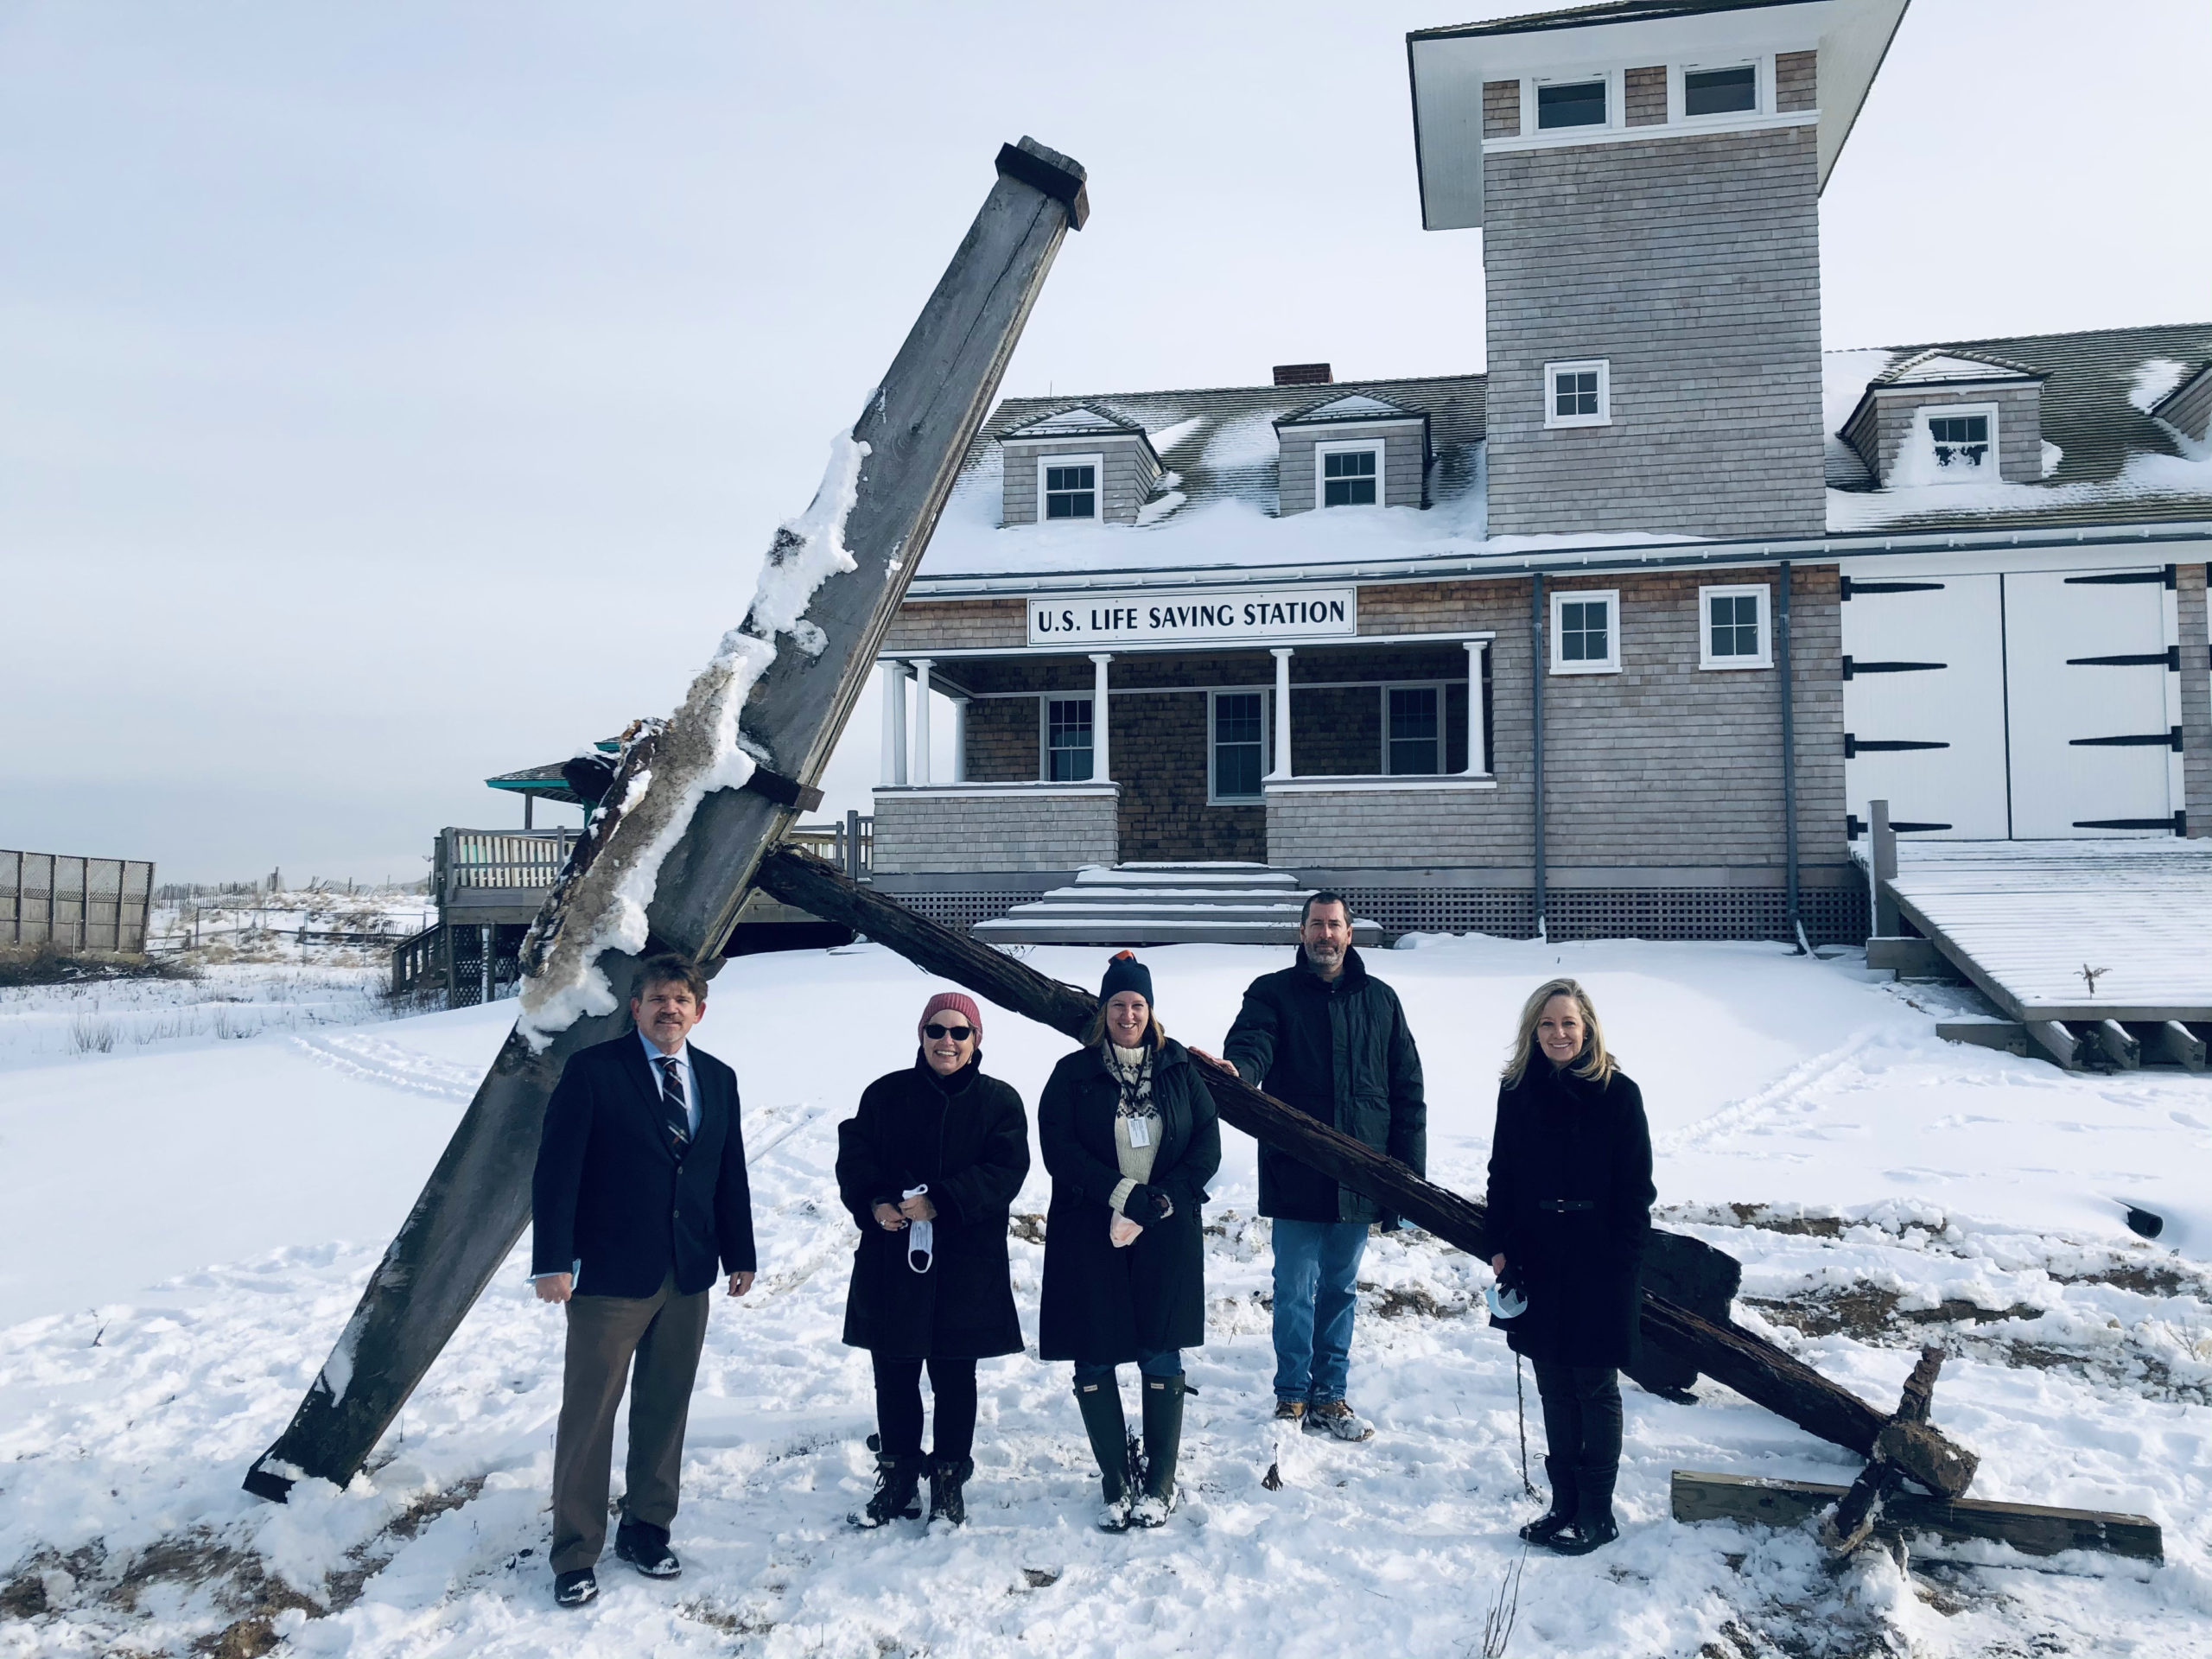 Greeting the arrival of the Circassian's anchor at the Tiana Life-Saving Station were, from left, Southampton Town Councilman Tommy John Schiavoni, CPF manager Lisa Kombrink, town historian Julie Greene, Matt Jedlicka of McLean Associates, and Town Clerk Sundy Schermeeyer.